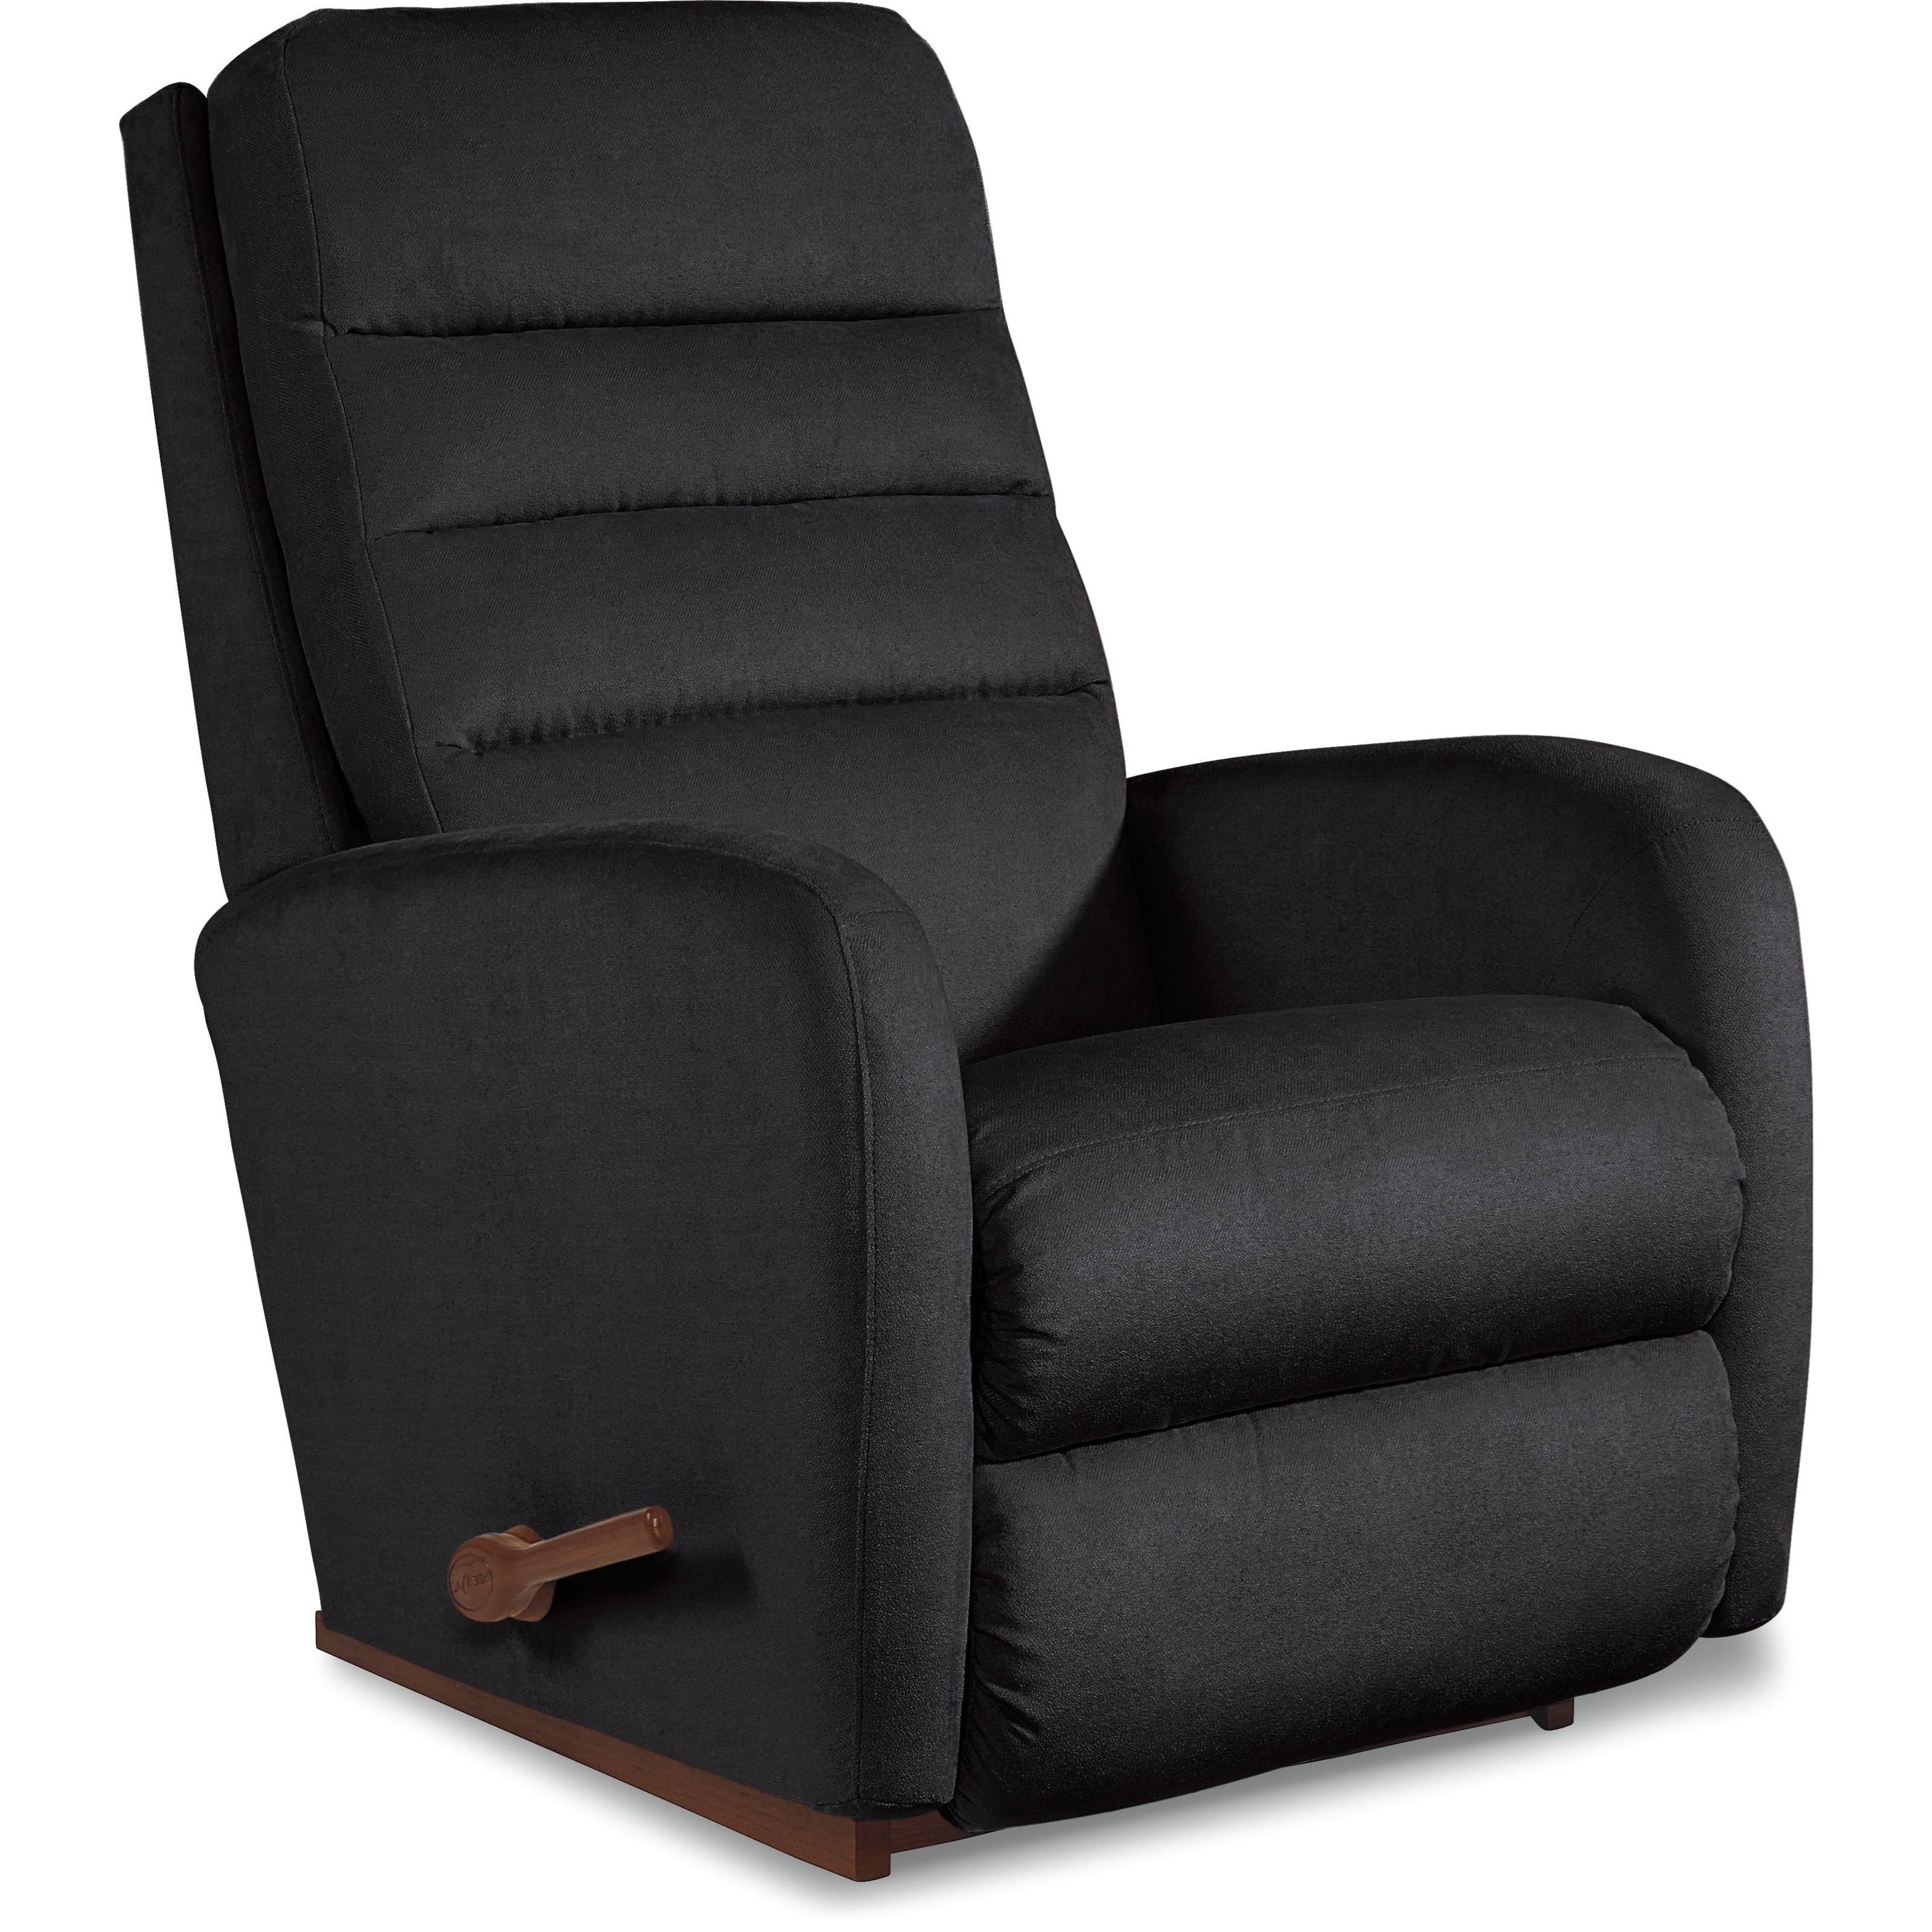 Forum Rocking Recliner by La-Z-Boy at Fisher Home Furnishings